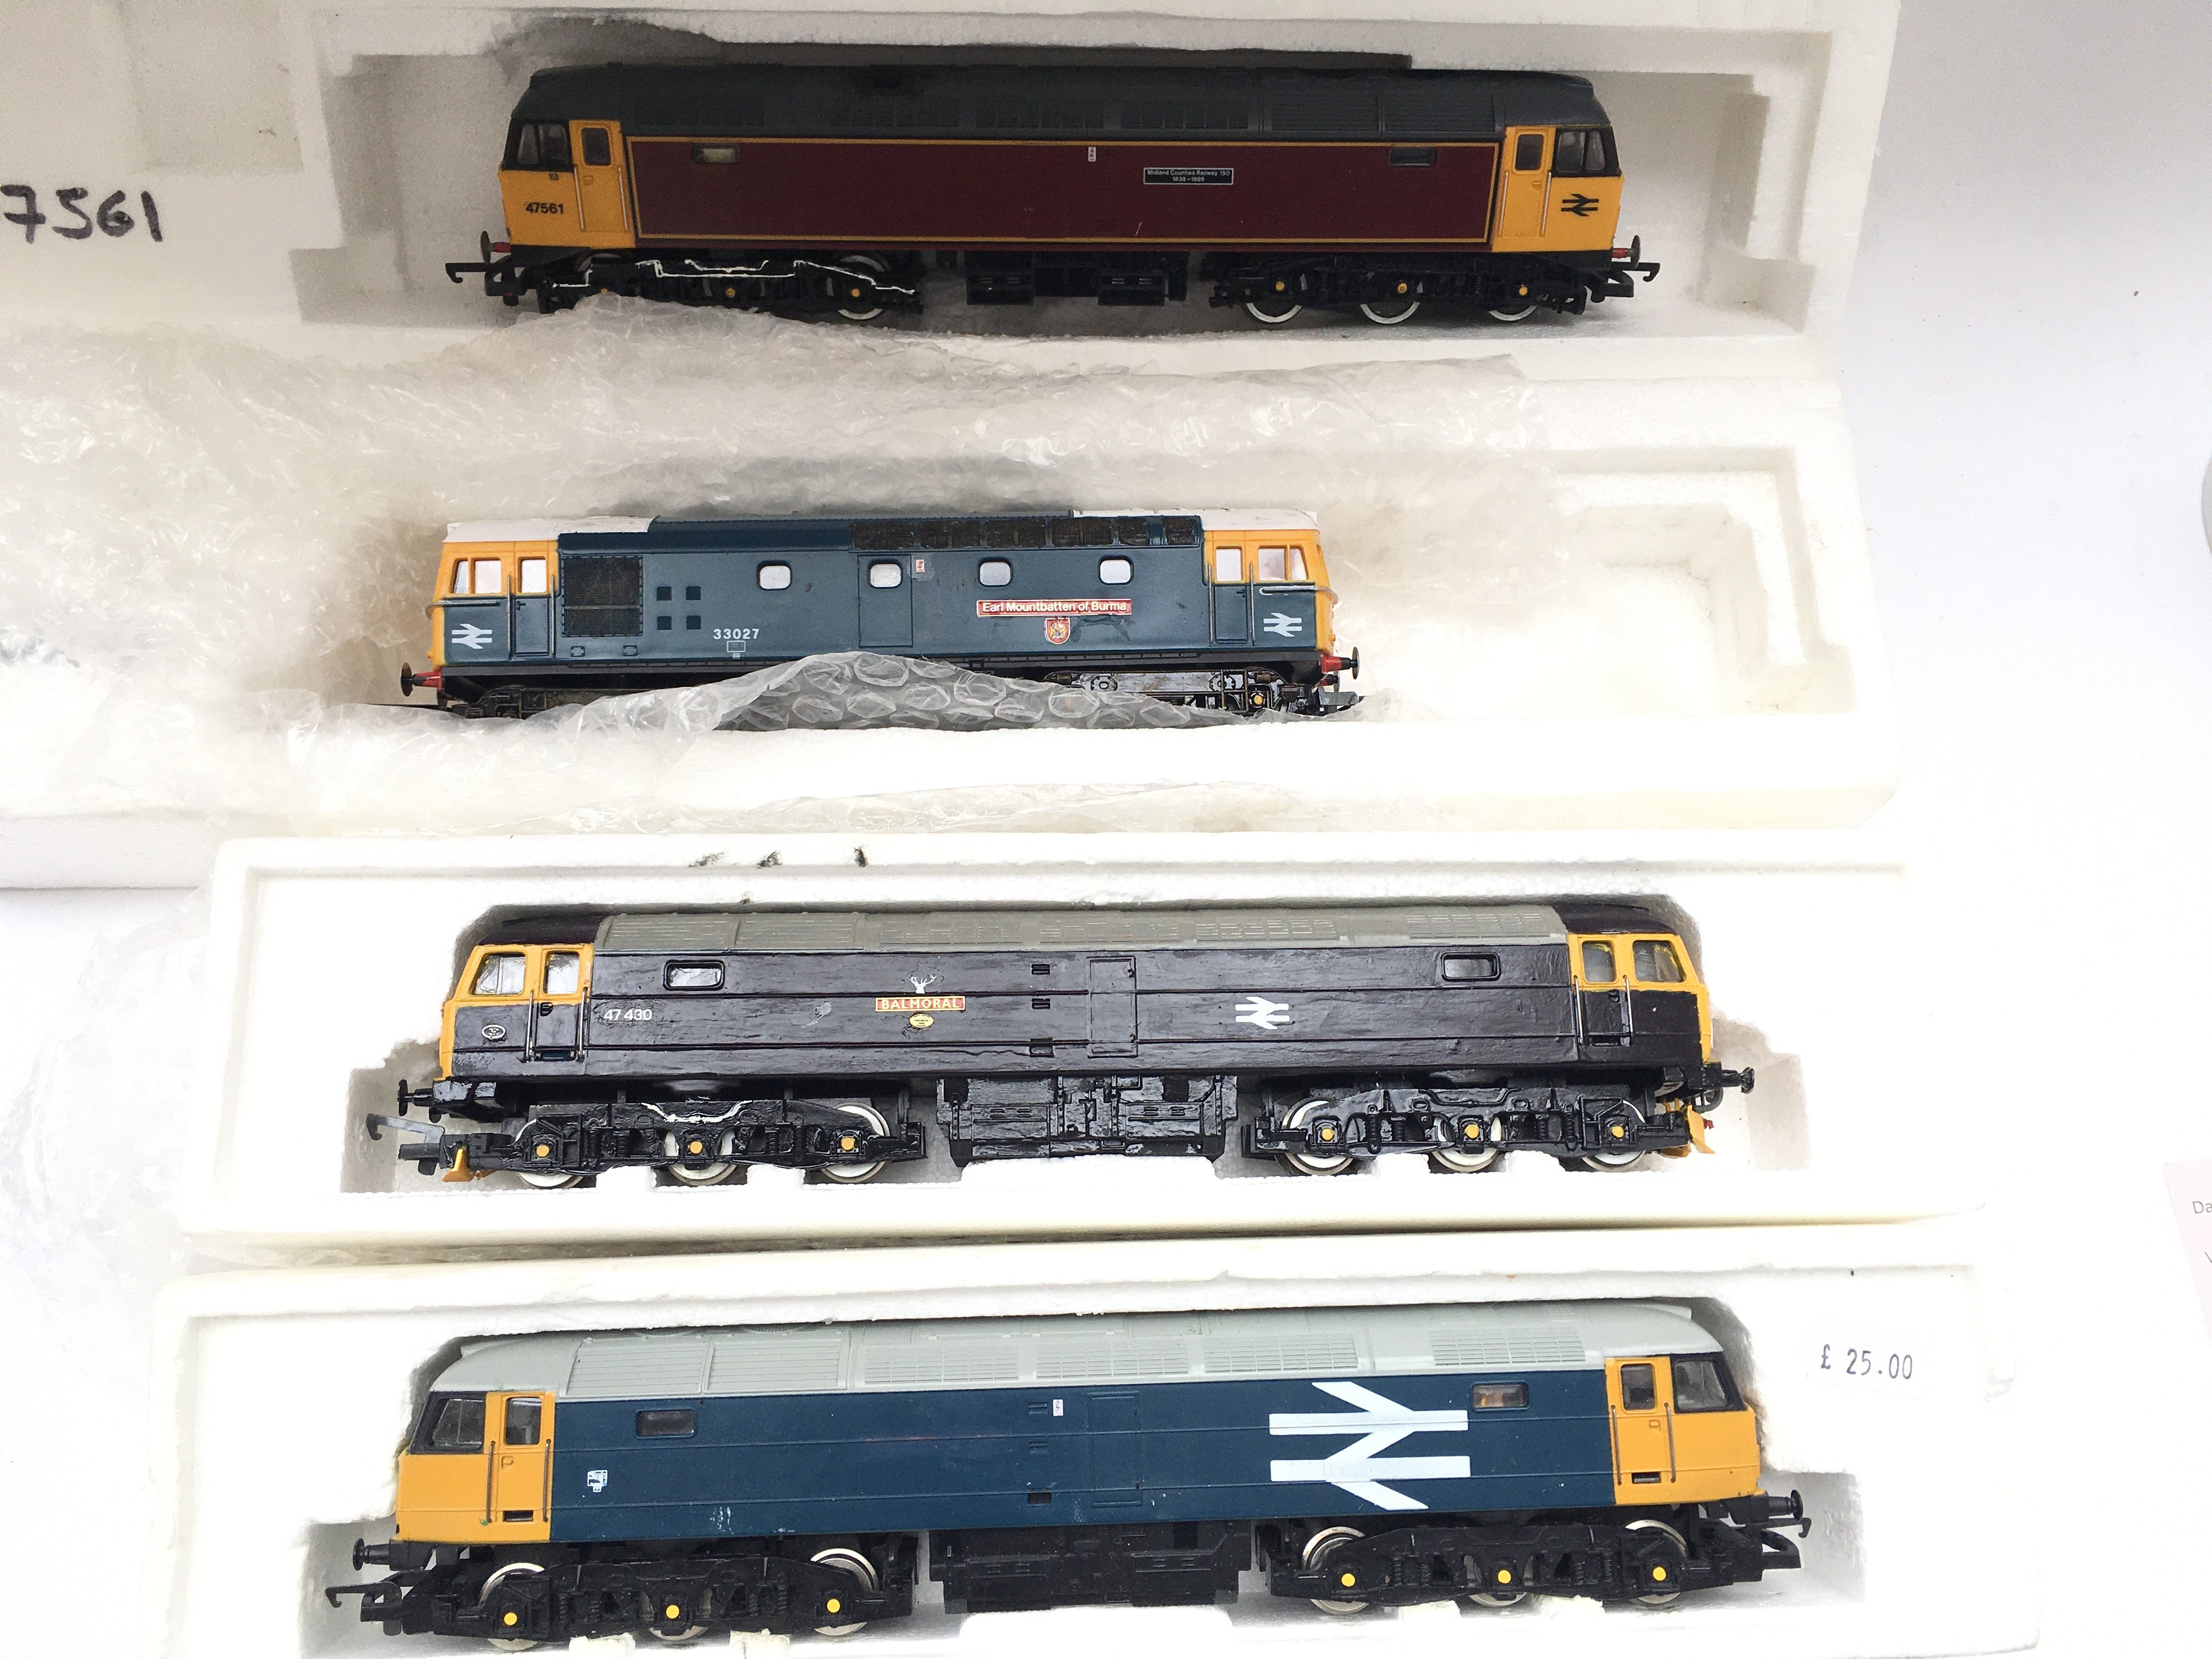 A Collection of 4 X 00 Gauge Locomotives 2 Have Be